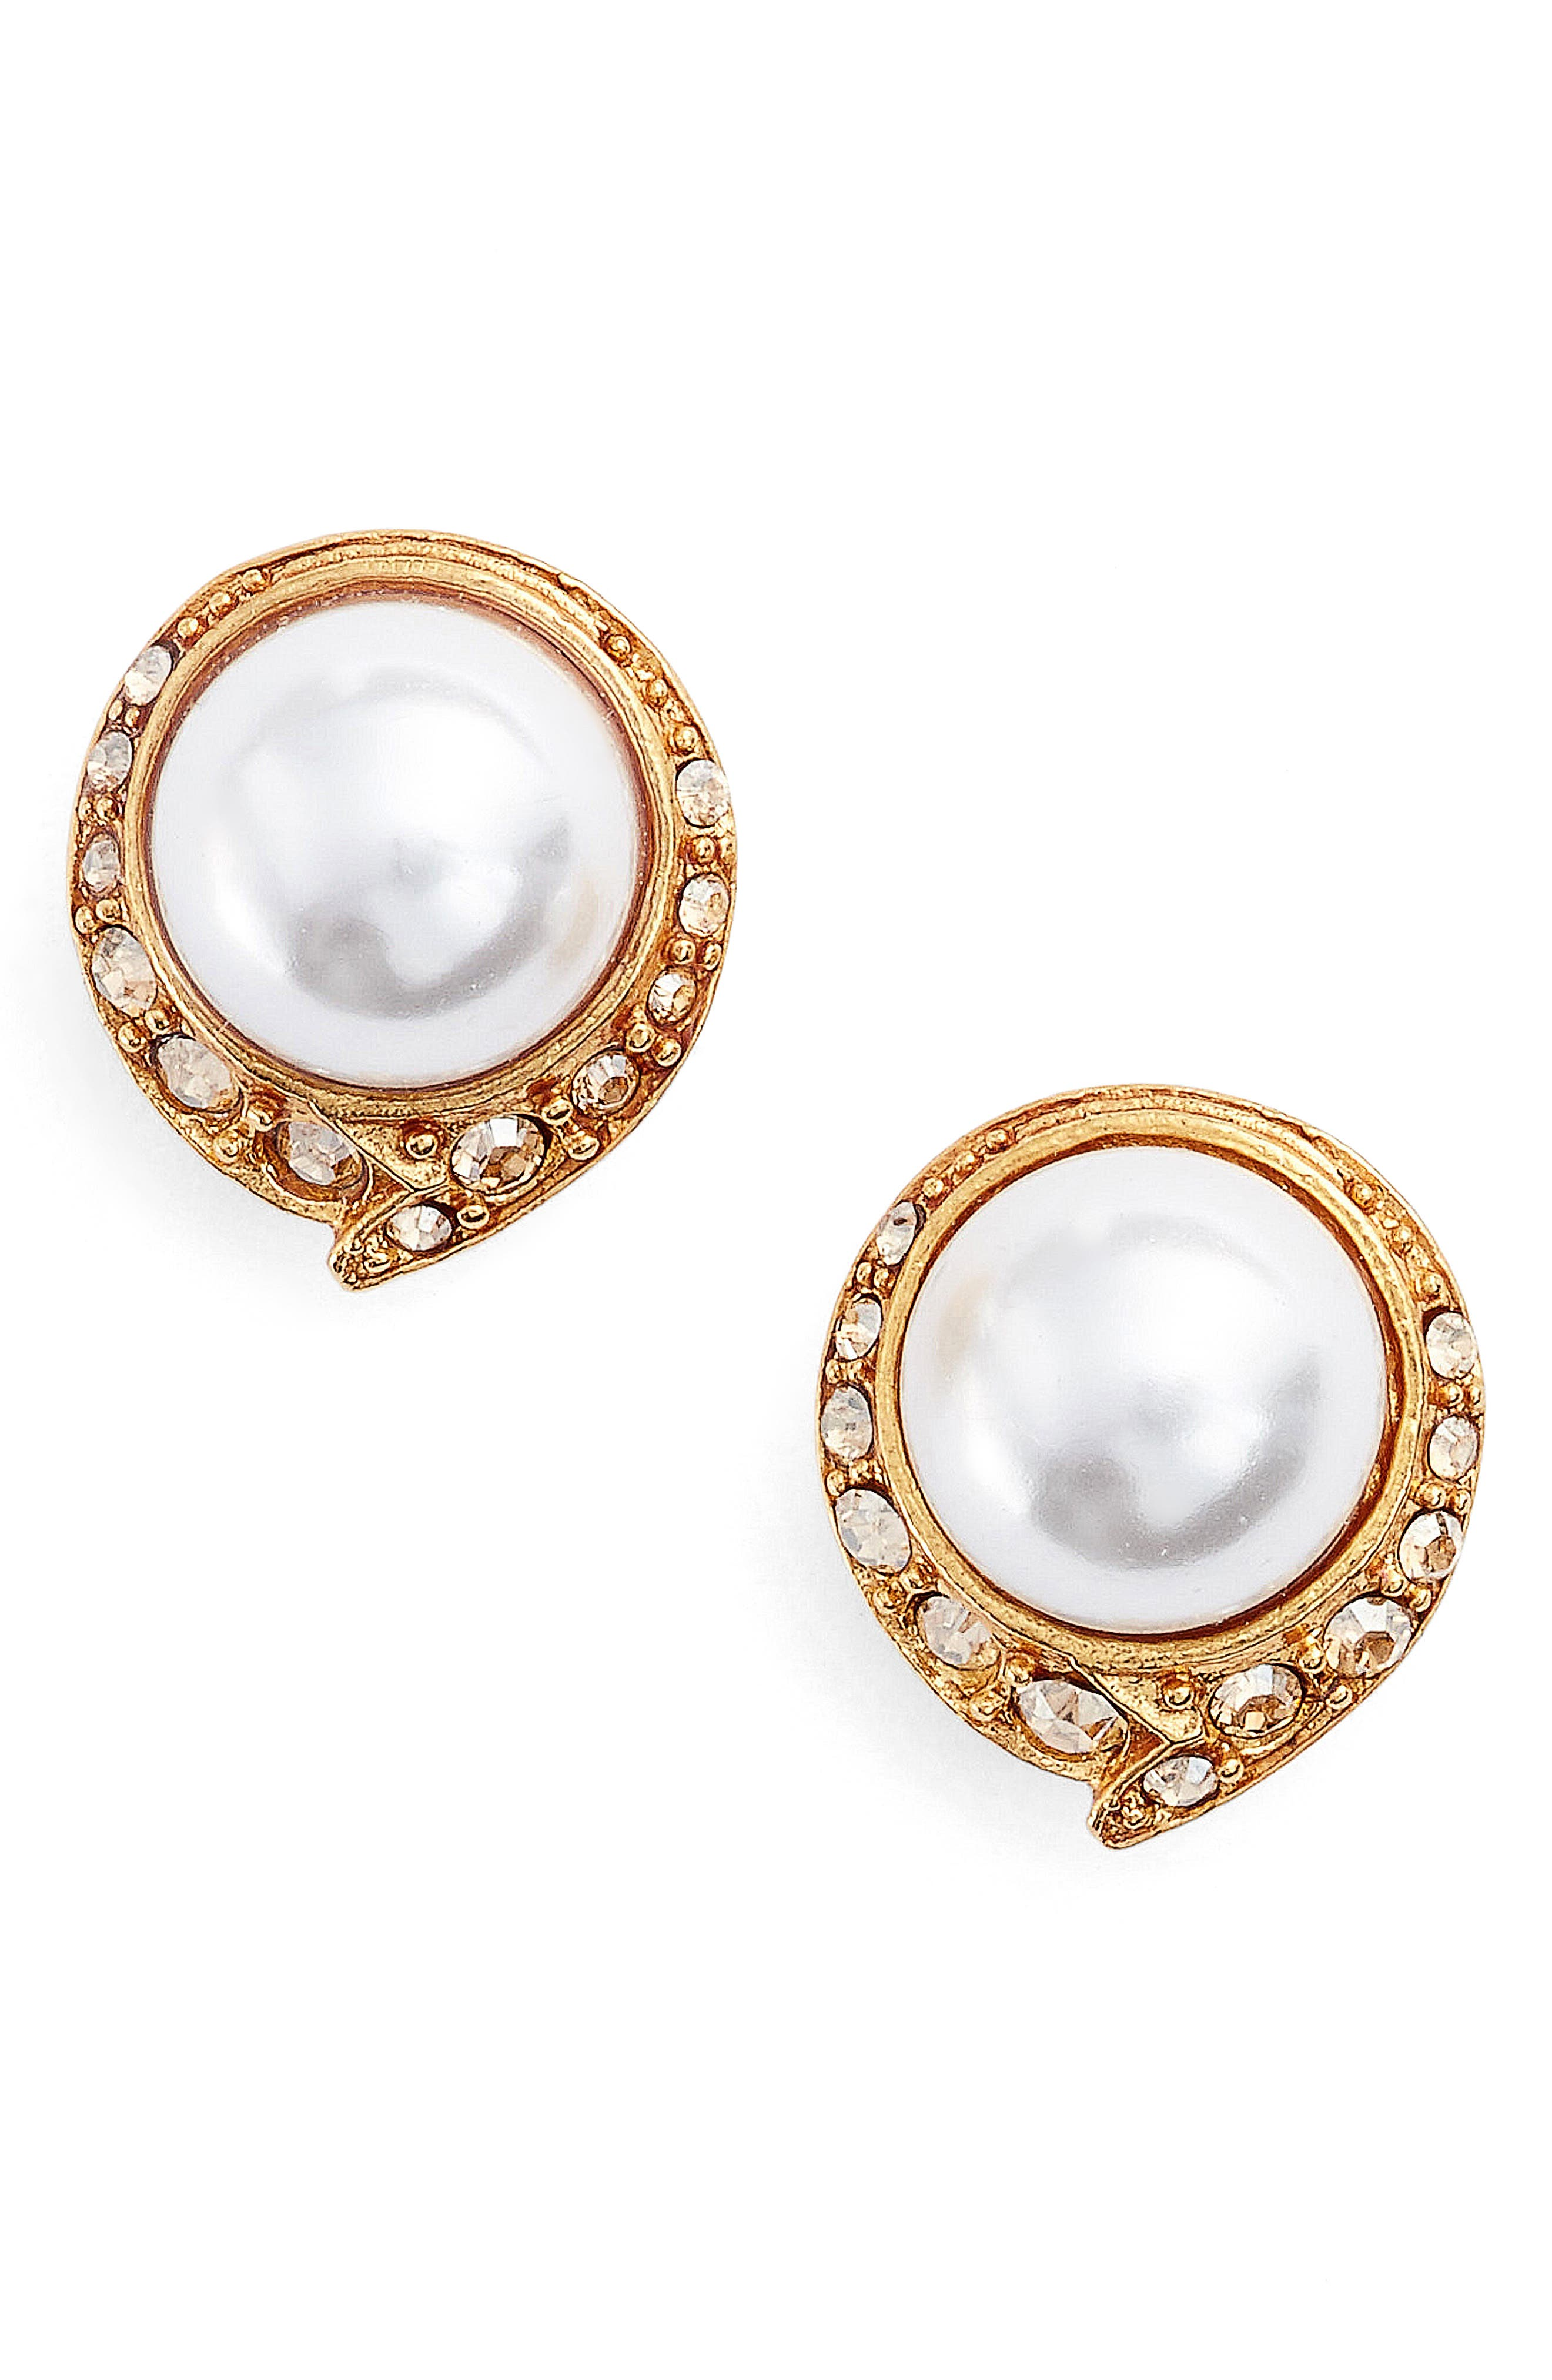 Oscar de la Renta Simulated Pearl Stud Earrings